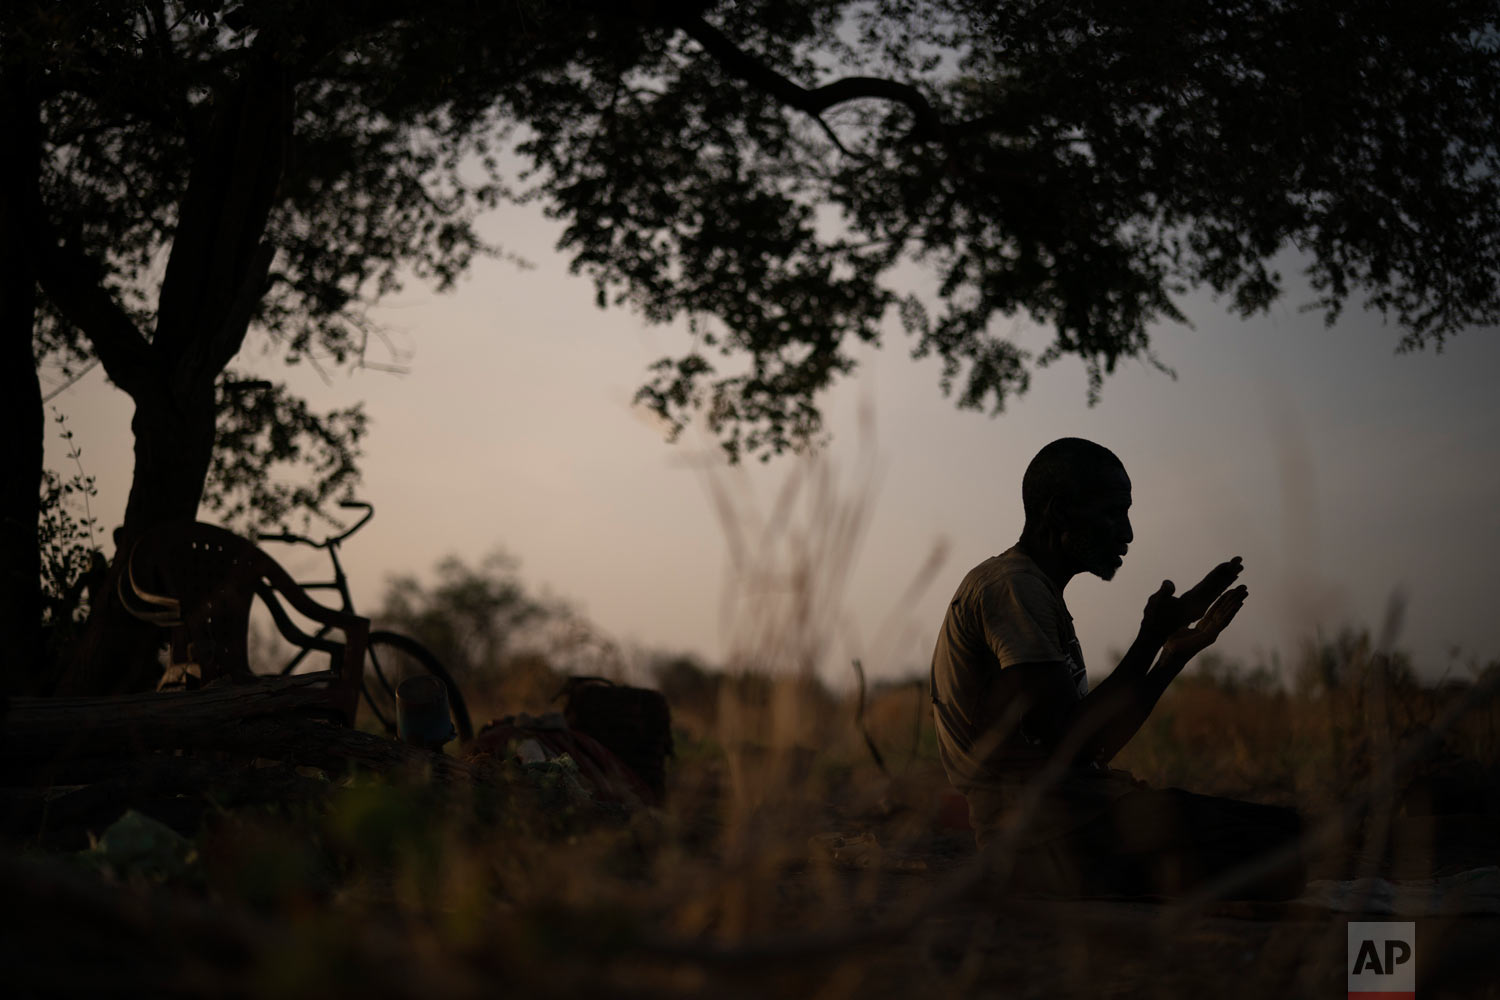 Cheikh Fofana prays under a tree after working in a peanut field, as the sun sets on Nov. 25, 2018, in Goudiry, Senegal. (AP Photo/Felipe Dana)